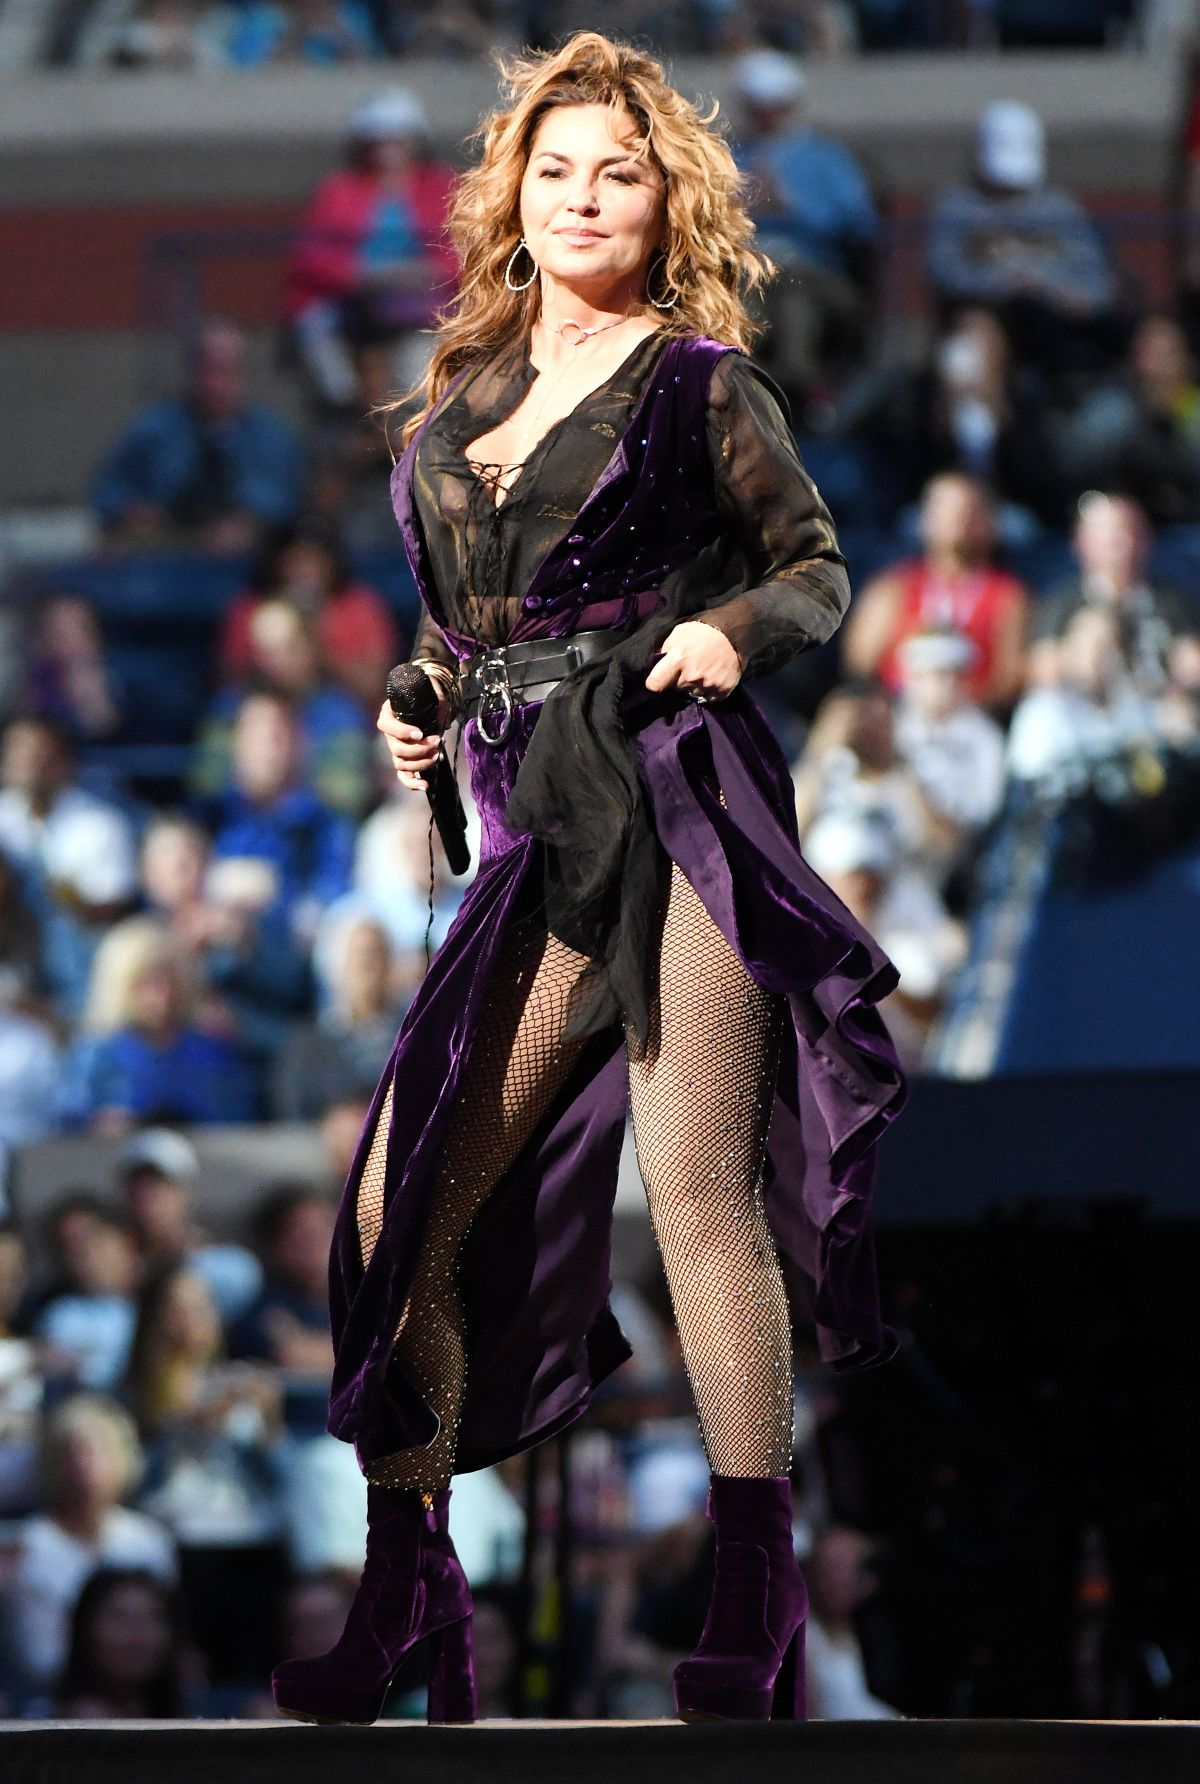 SHANIA TWAIN Performs at Arthur Ashe Stadium at Opening Night of US Open 08/28/2017